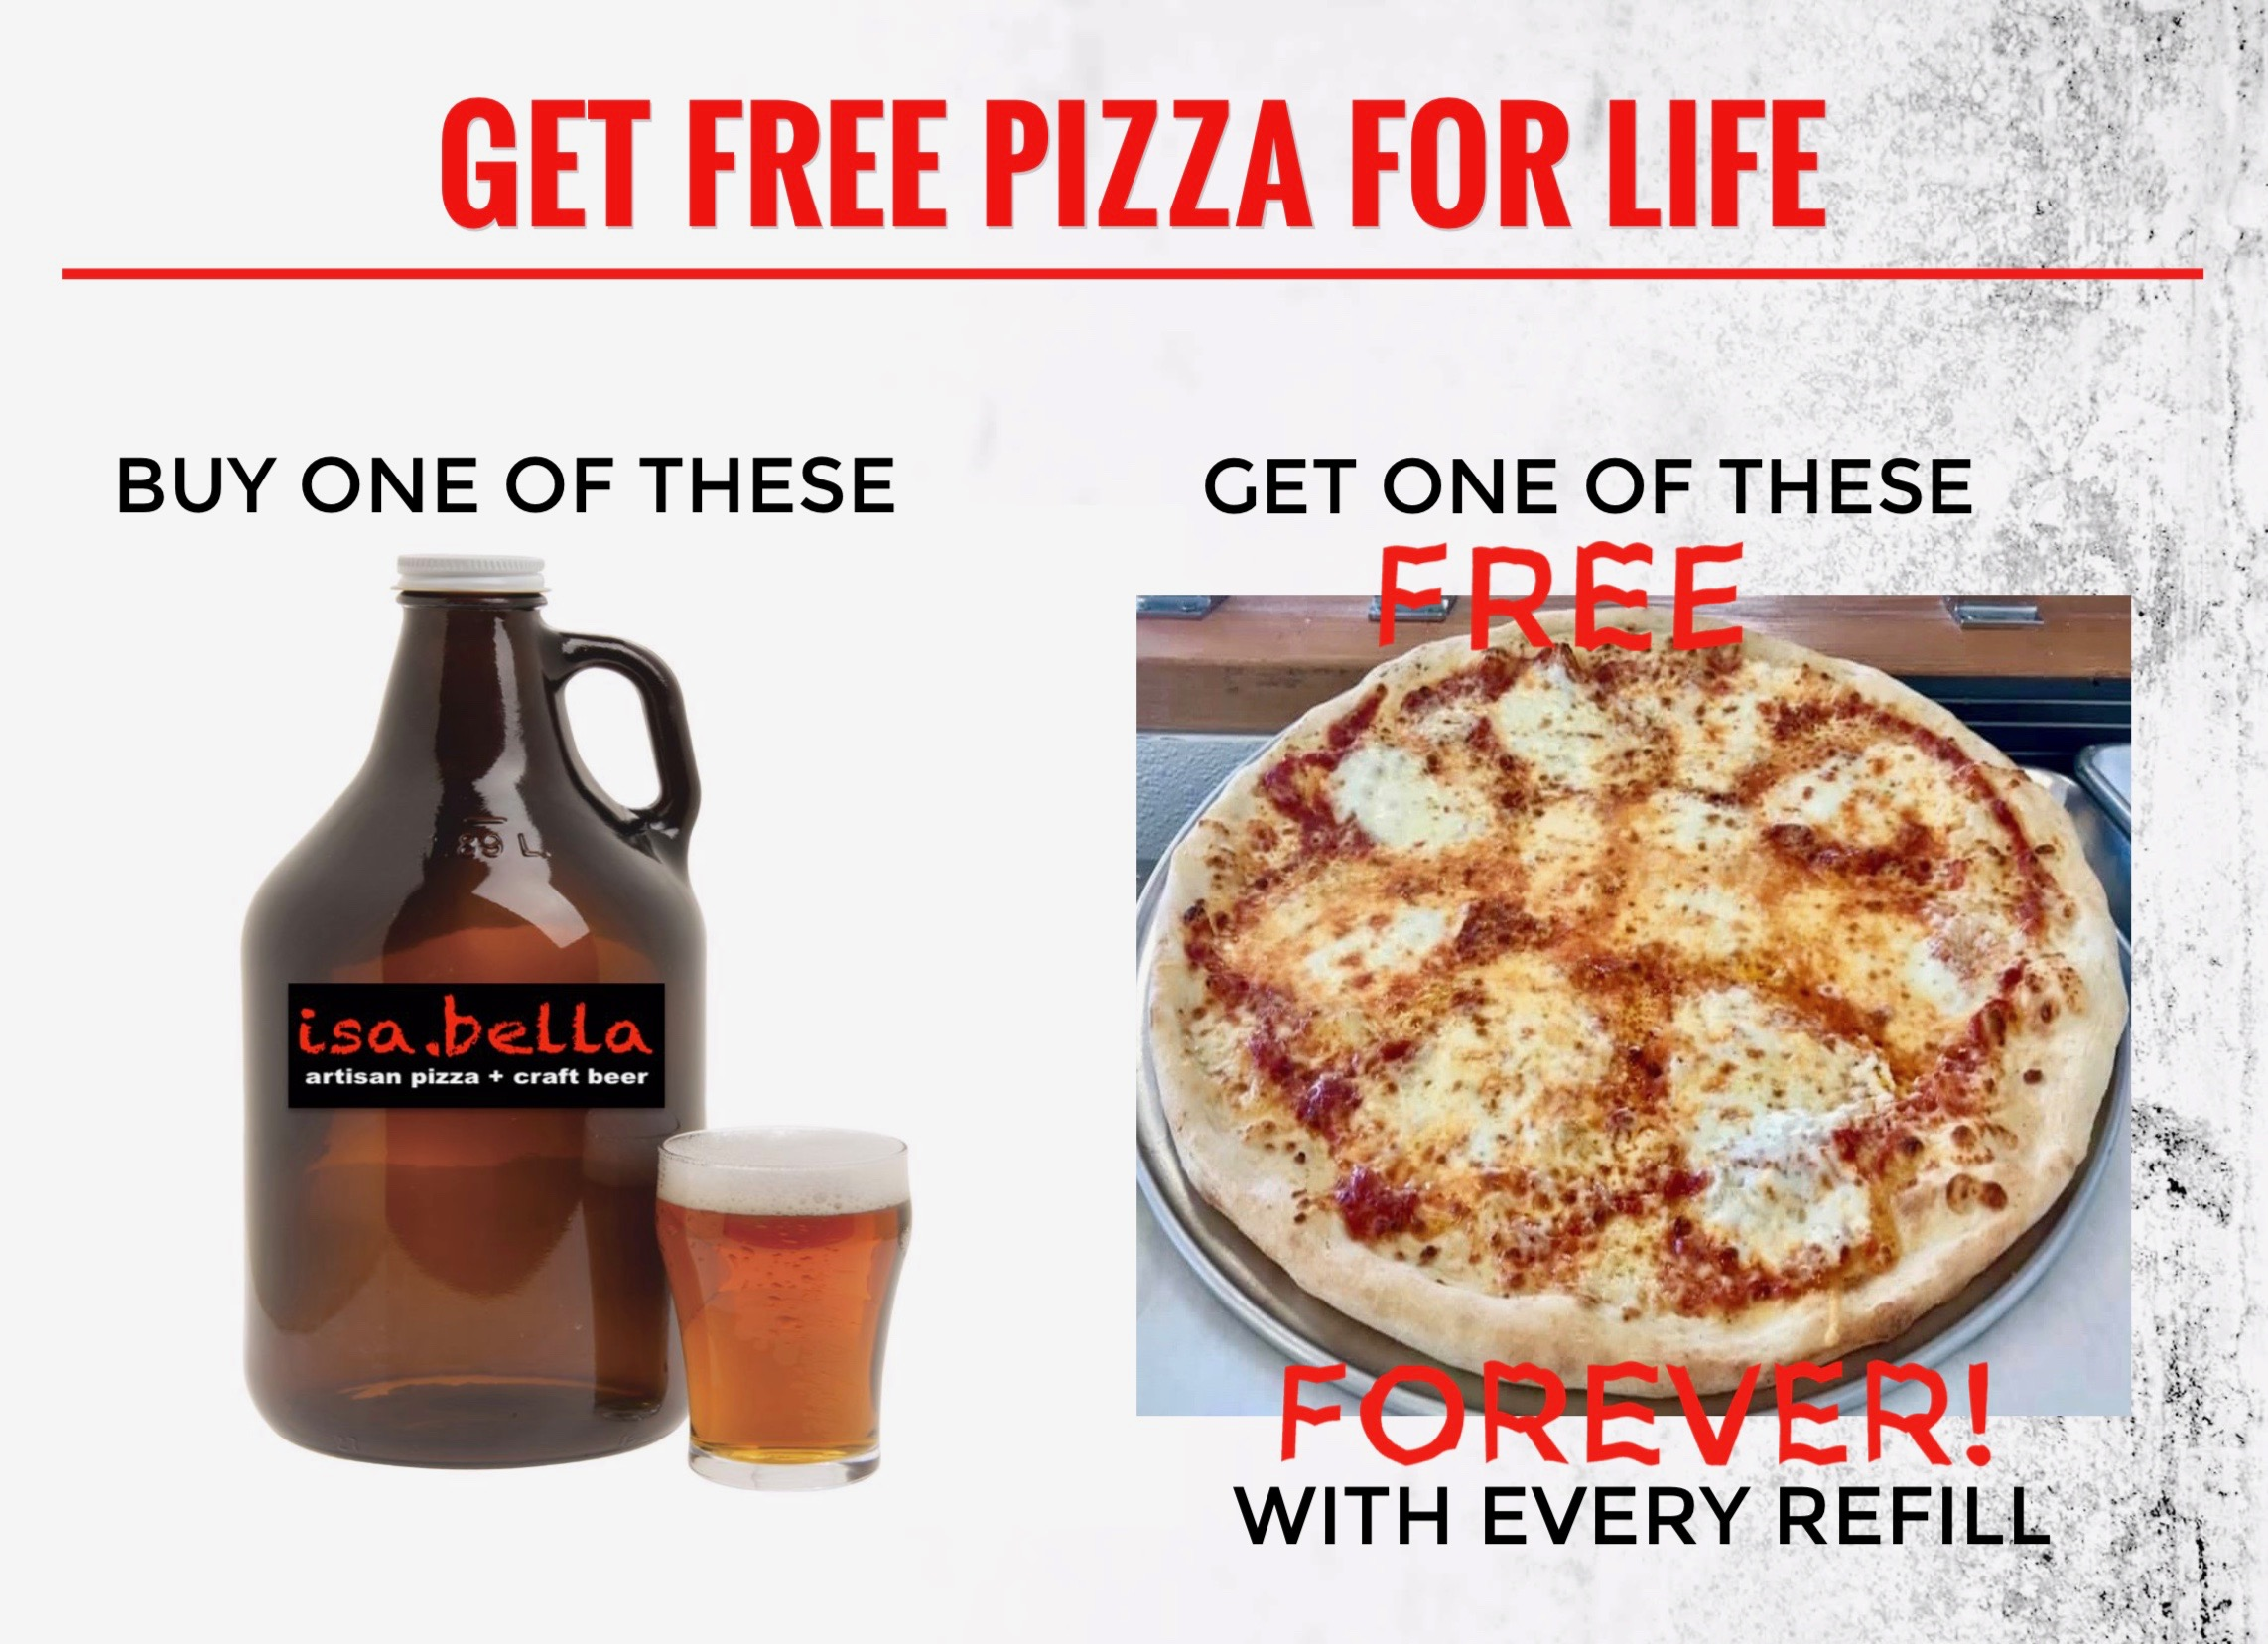 FREE PIZZA.jpeg